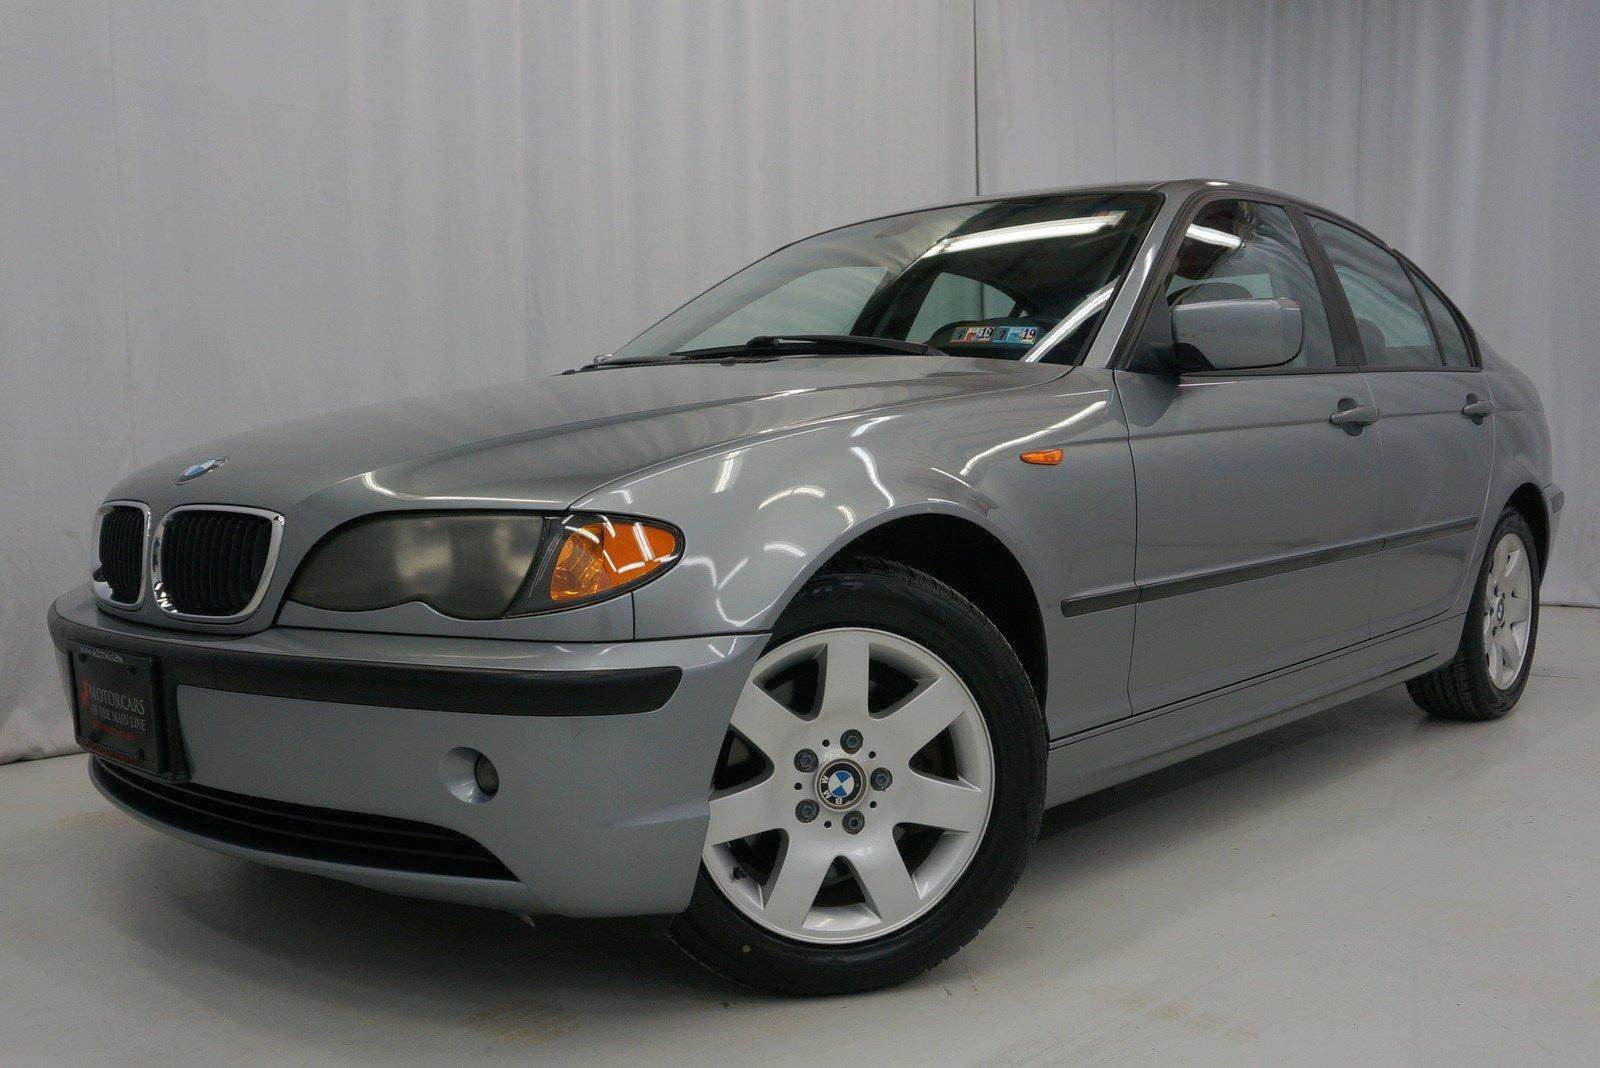 2004 Bmw 3 Series 325i Stock Nj96312 For Sale Near King Of Prussia